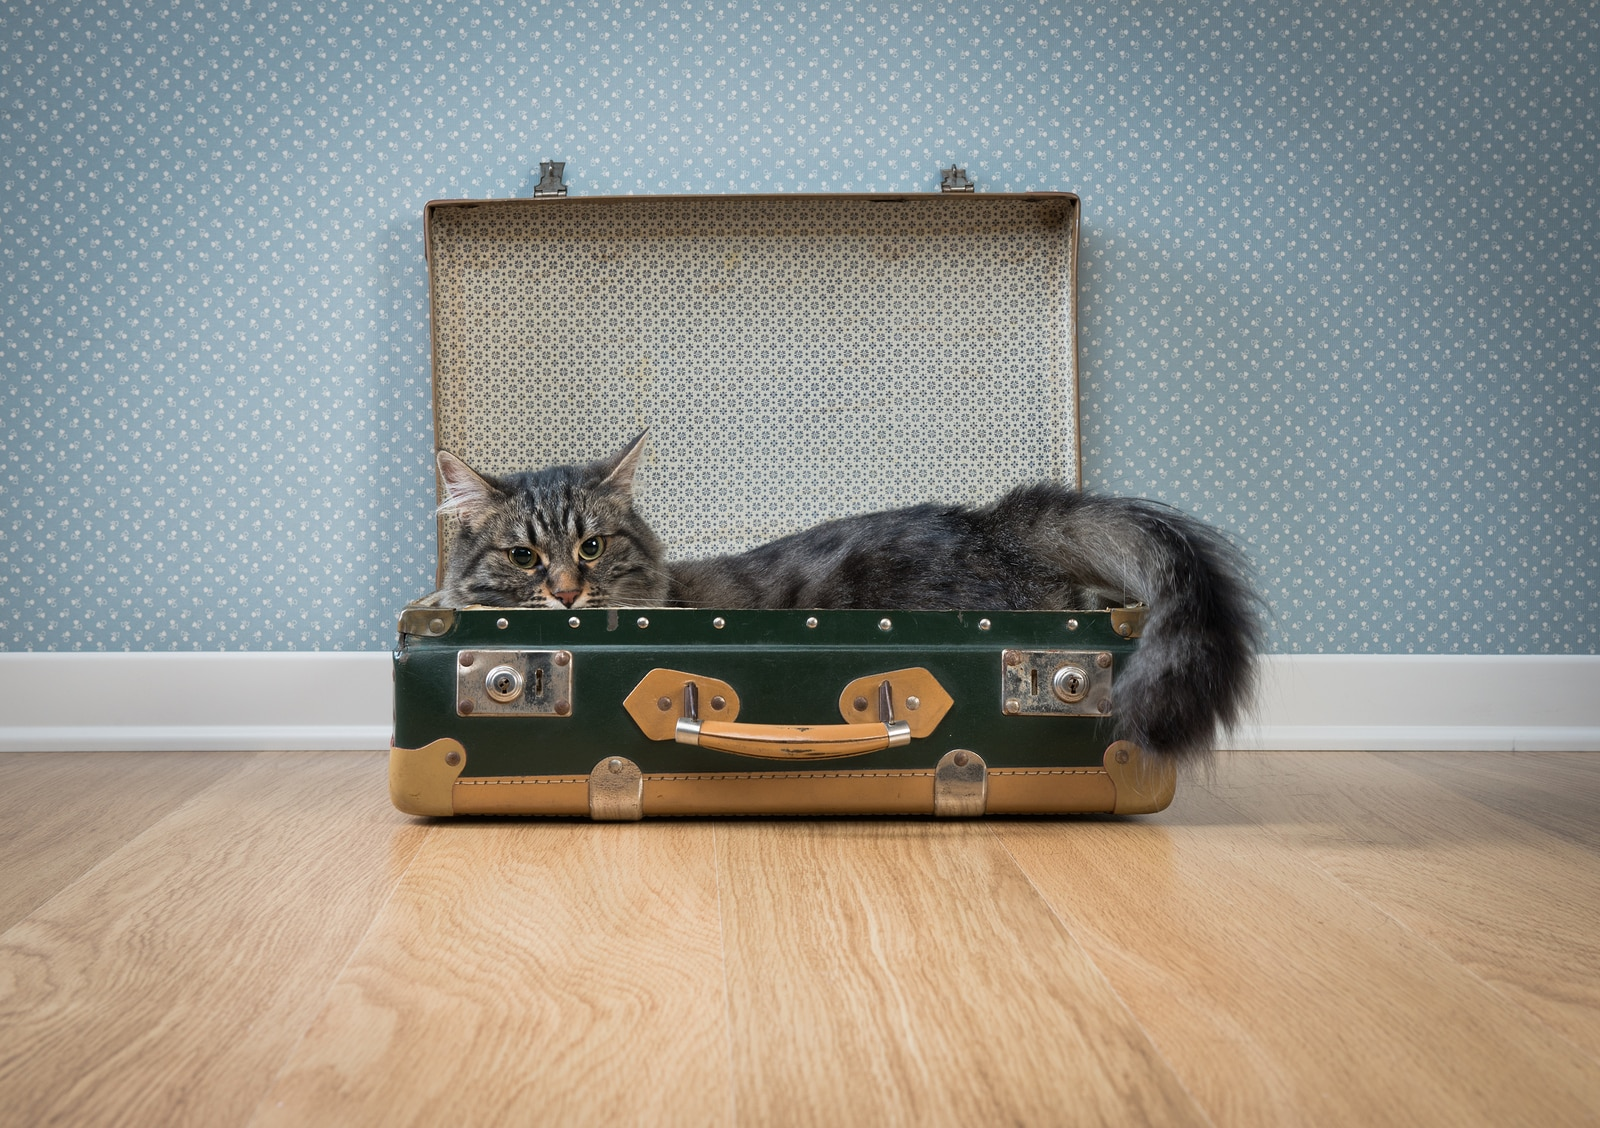 Long-haired gray cat in an open vintage green suitcase on hardwood floor against retro wallpaper.